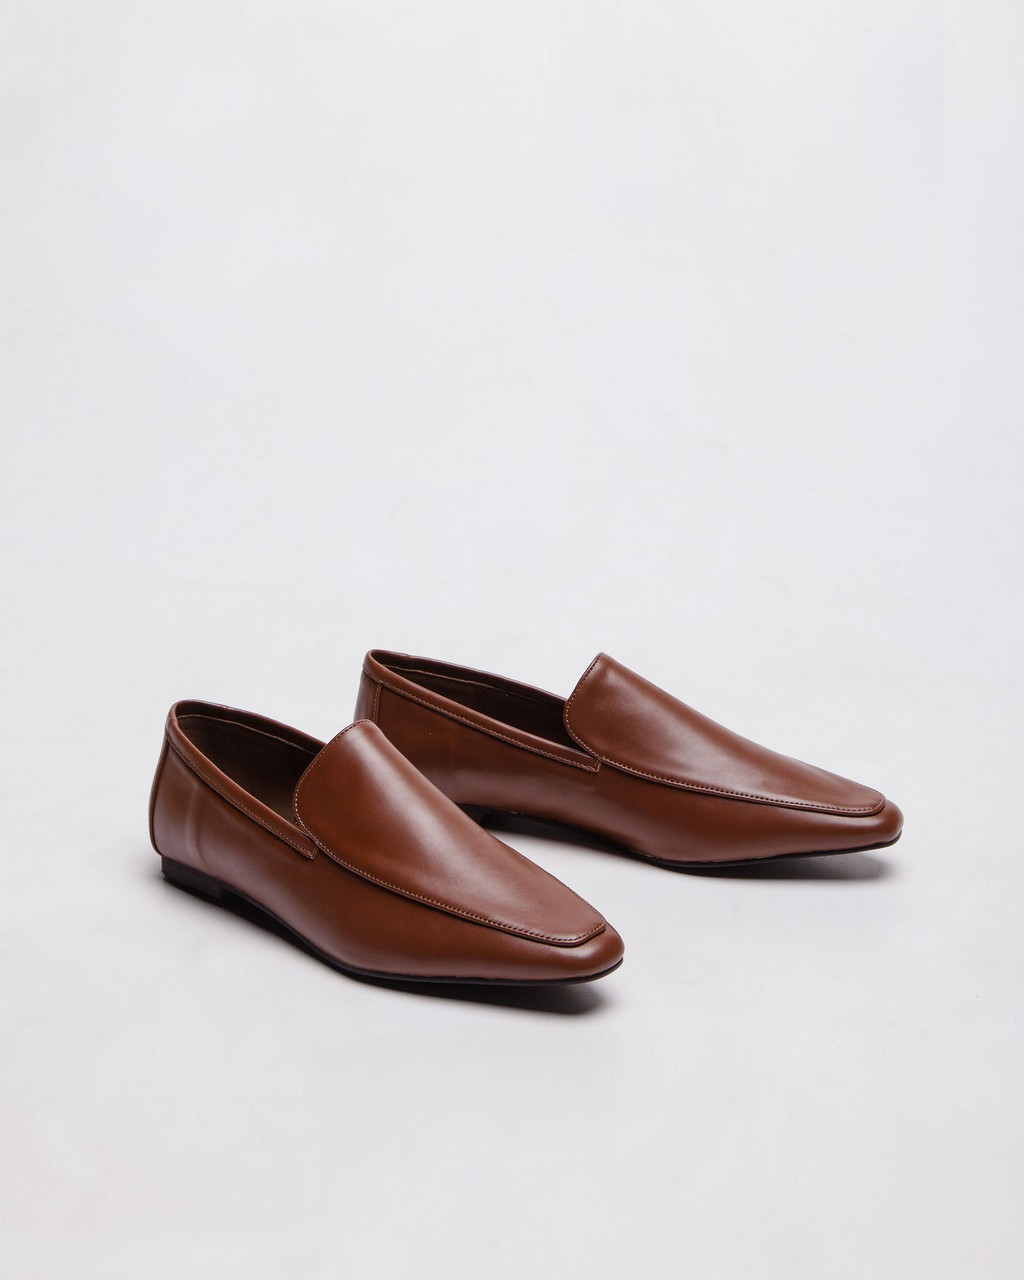 Tagtraume Piper-05 - Brown(브라운)